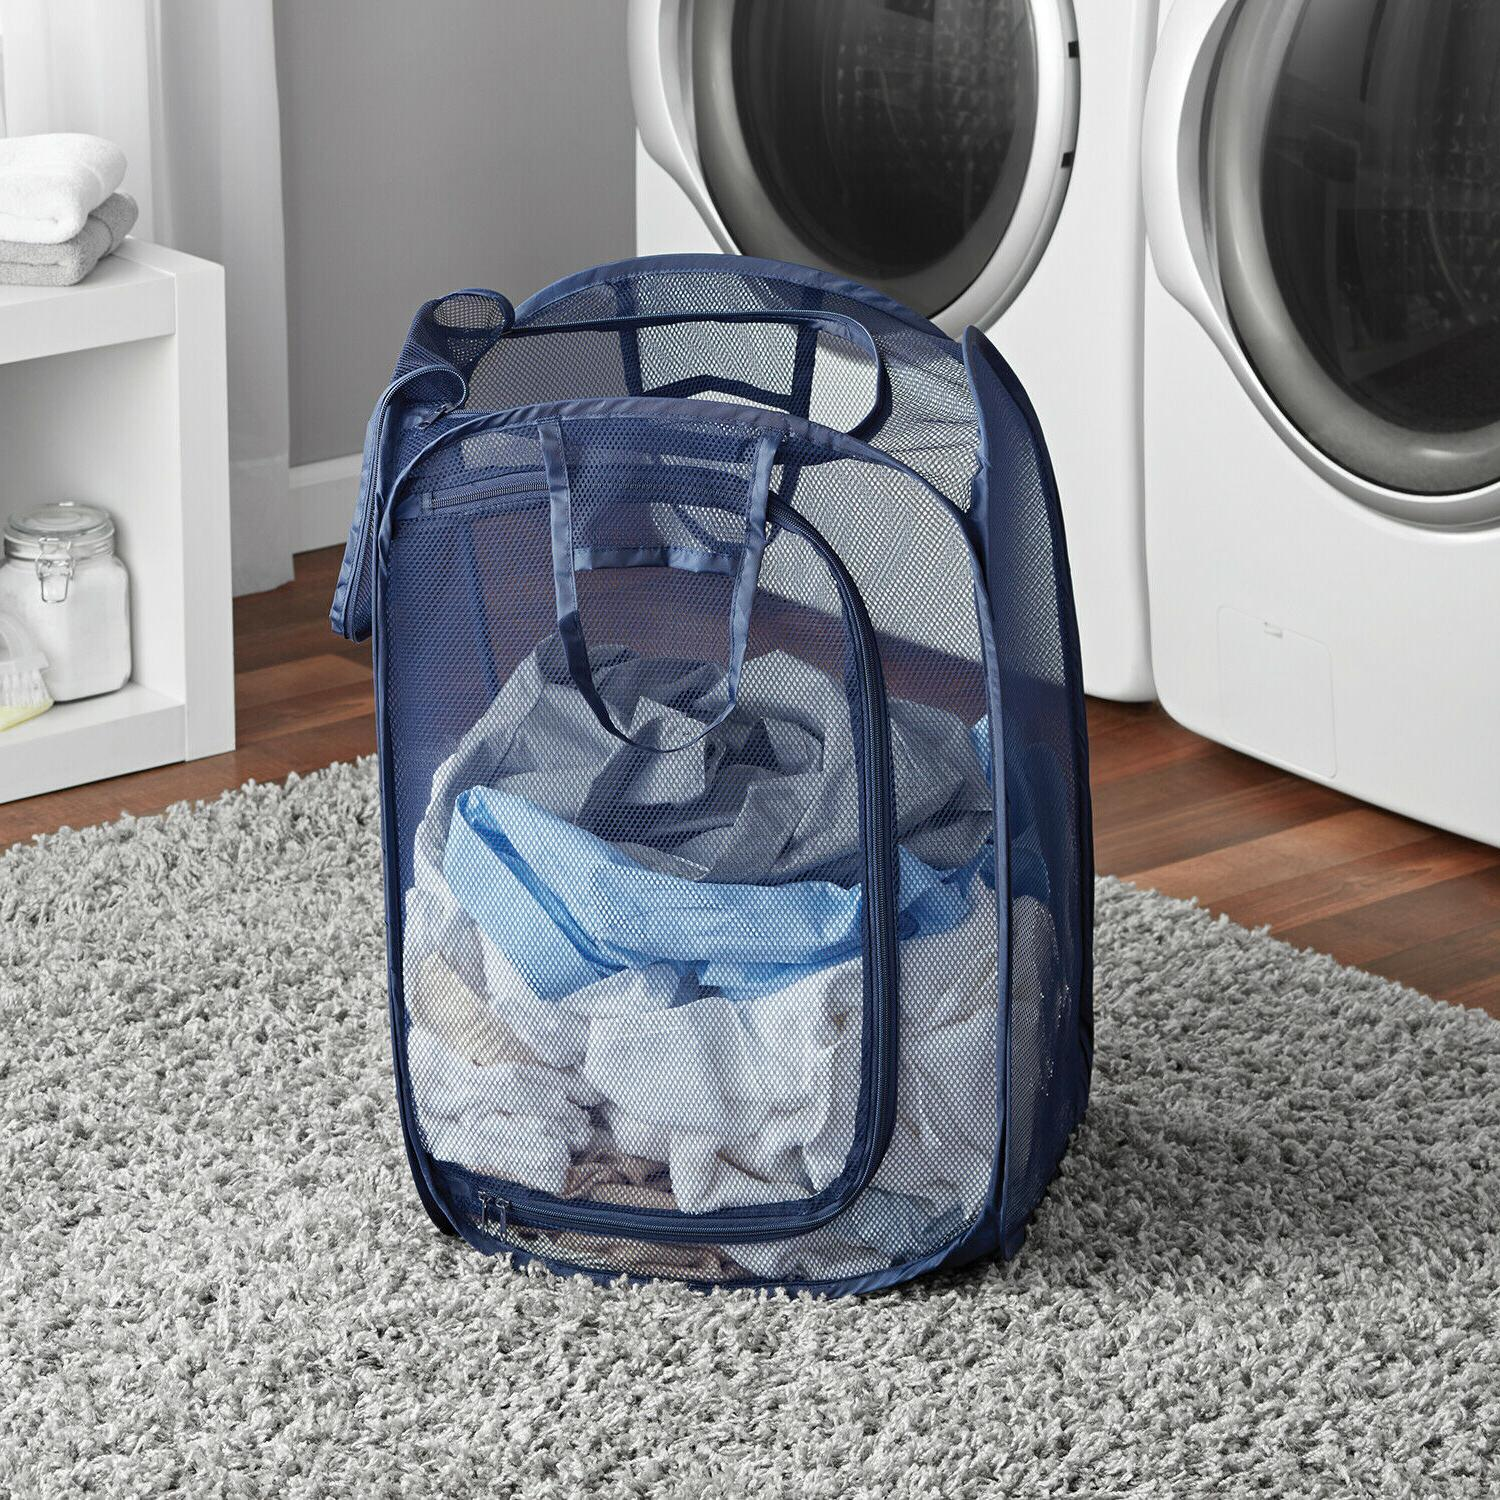 Collapsible Mesh Clothes Hamper One Basket*USA